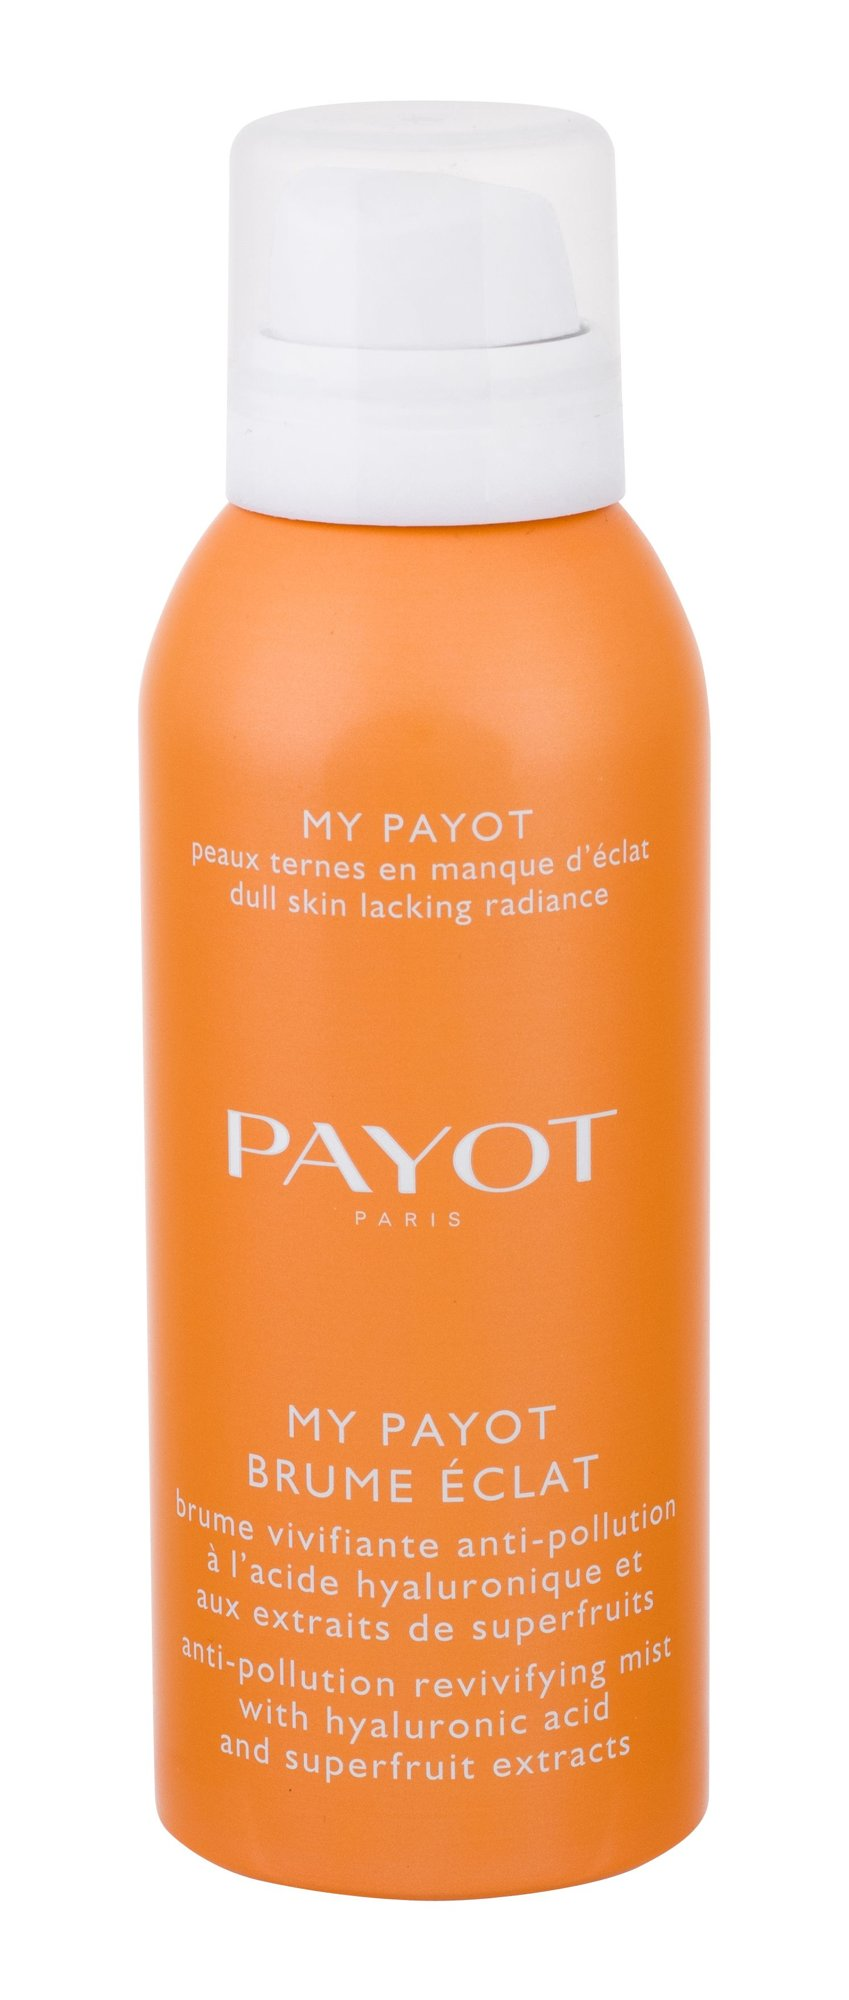 PAYOT My Payot Cosmetic 125ml  Anti-Pollution Revivifying Mist